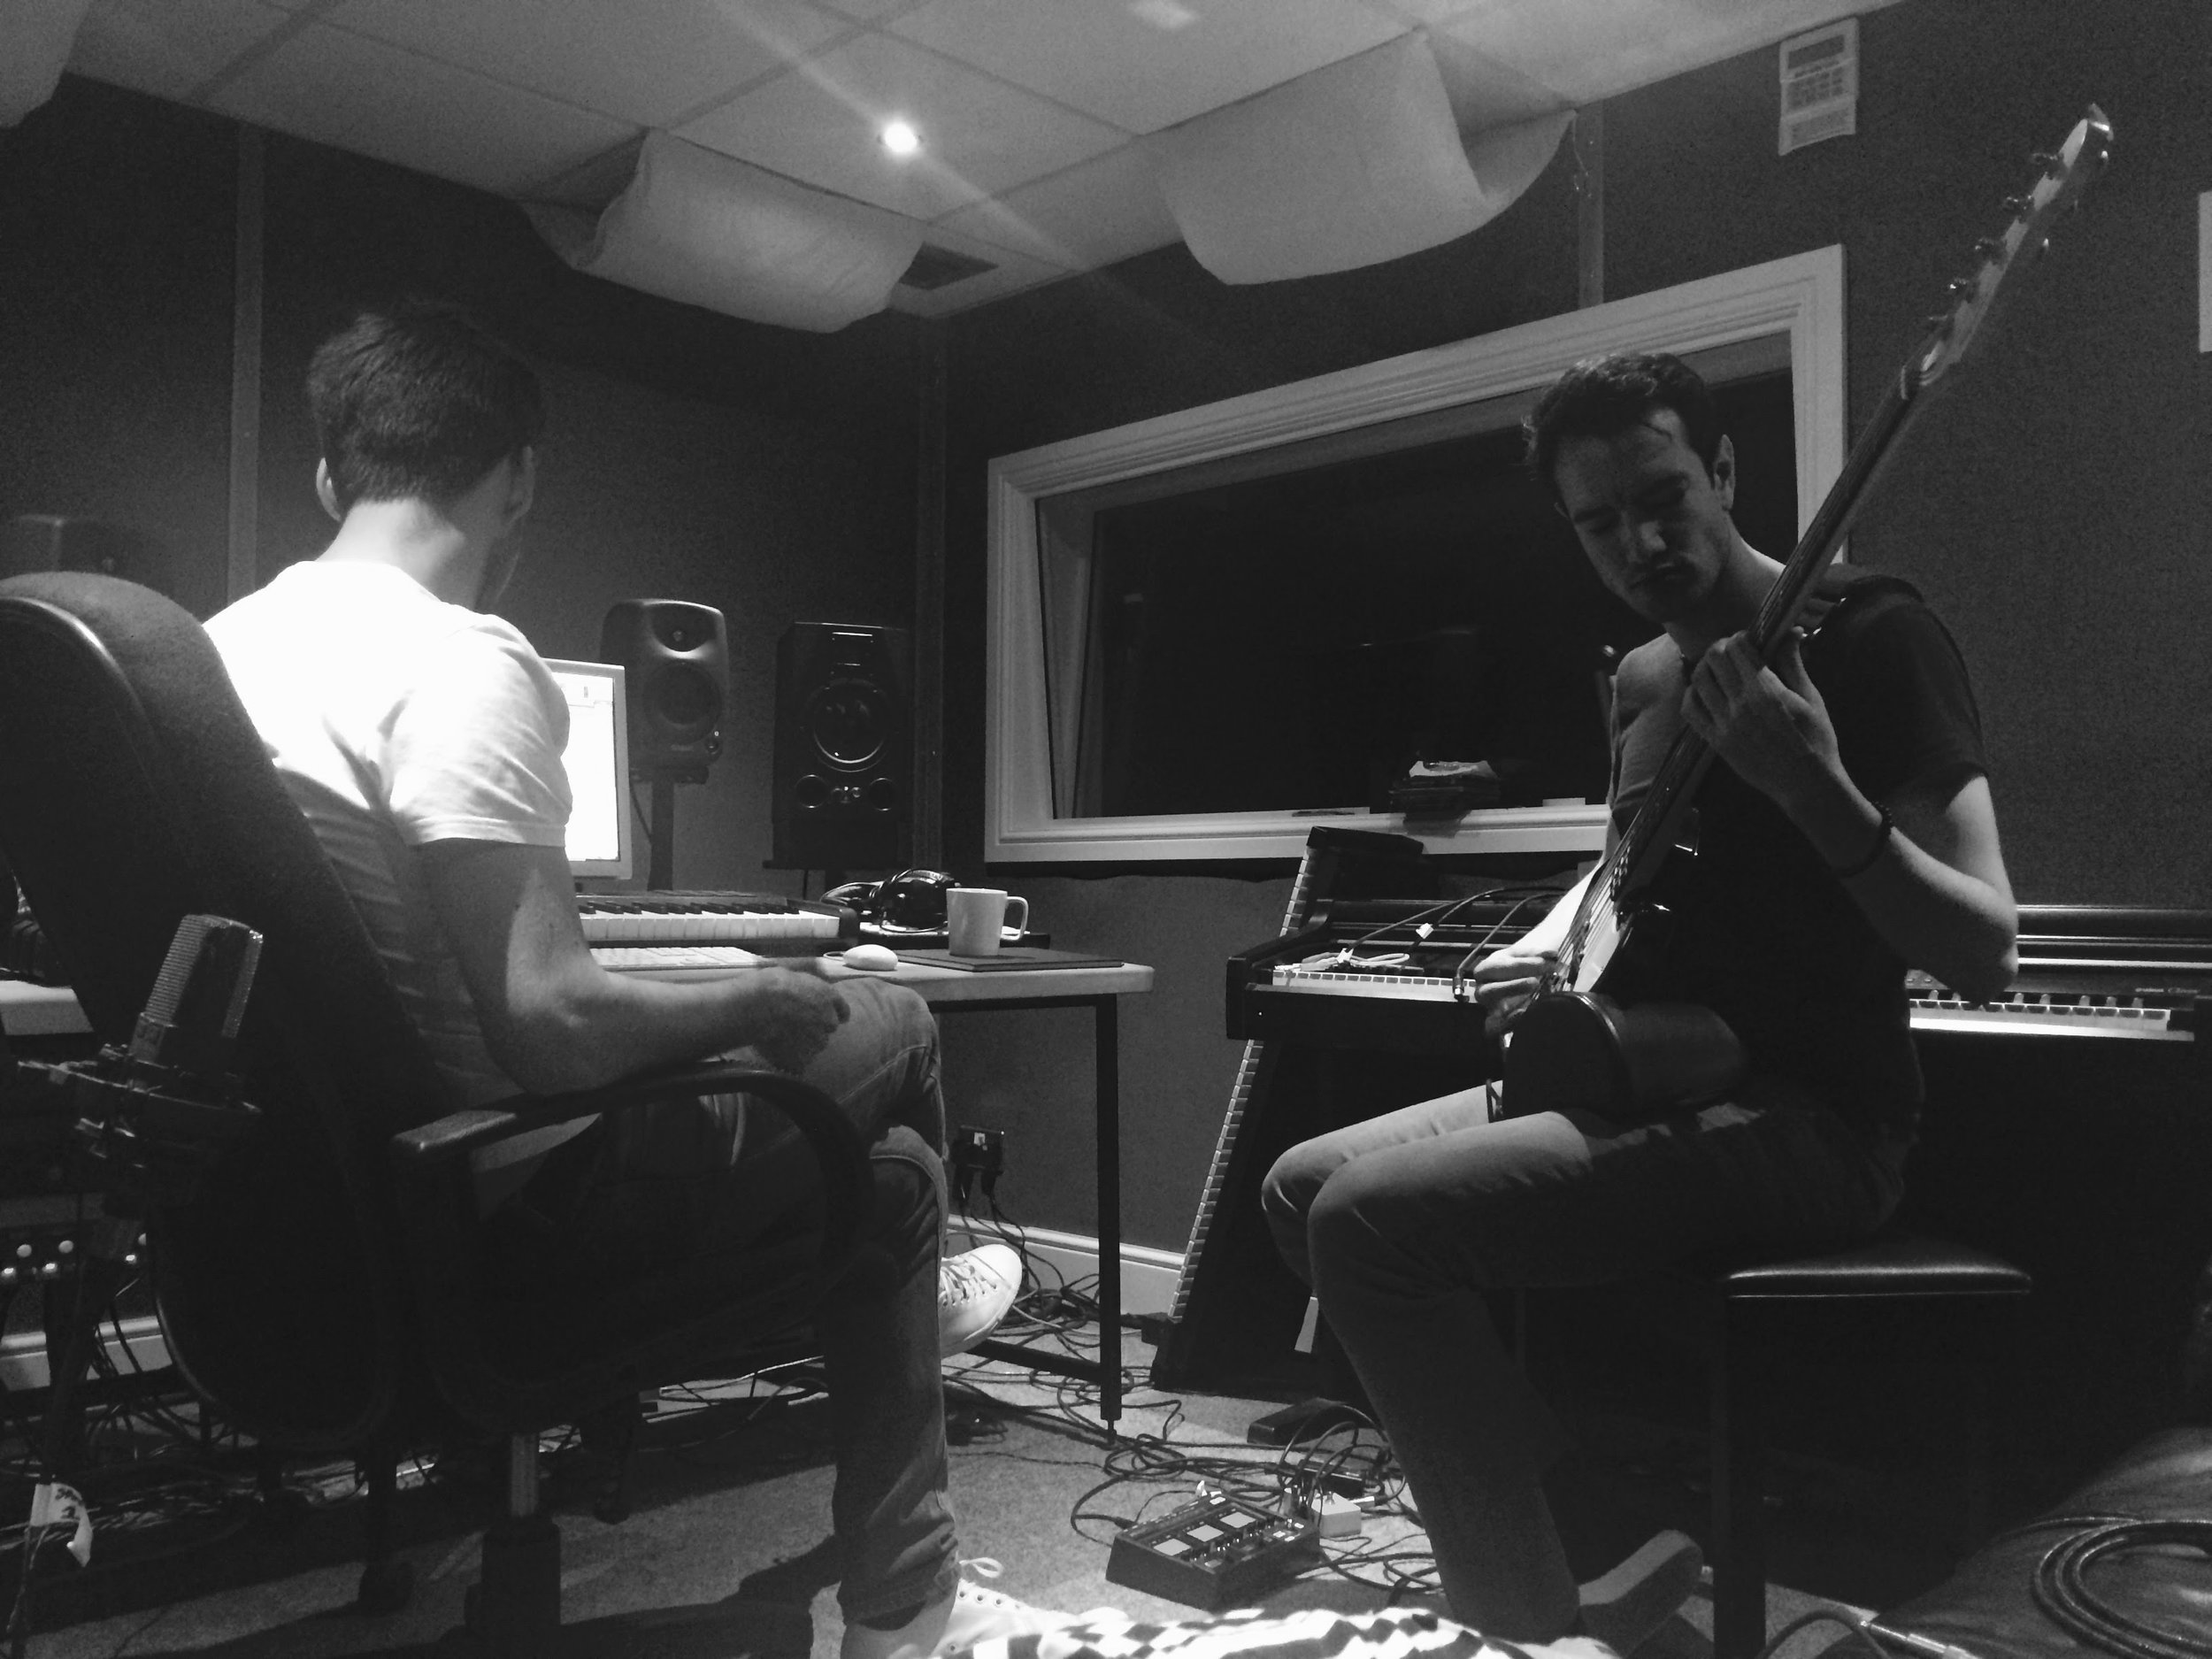 In the studio with Ross O'Reilly (left) and Samer Sharawi (right).